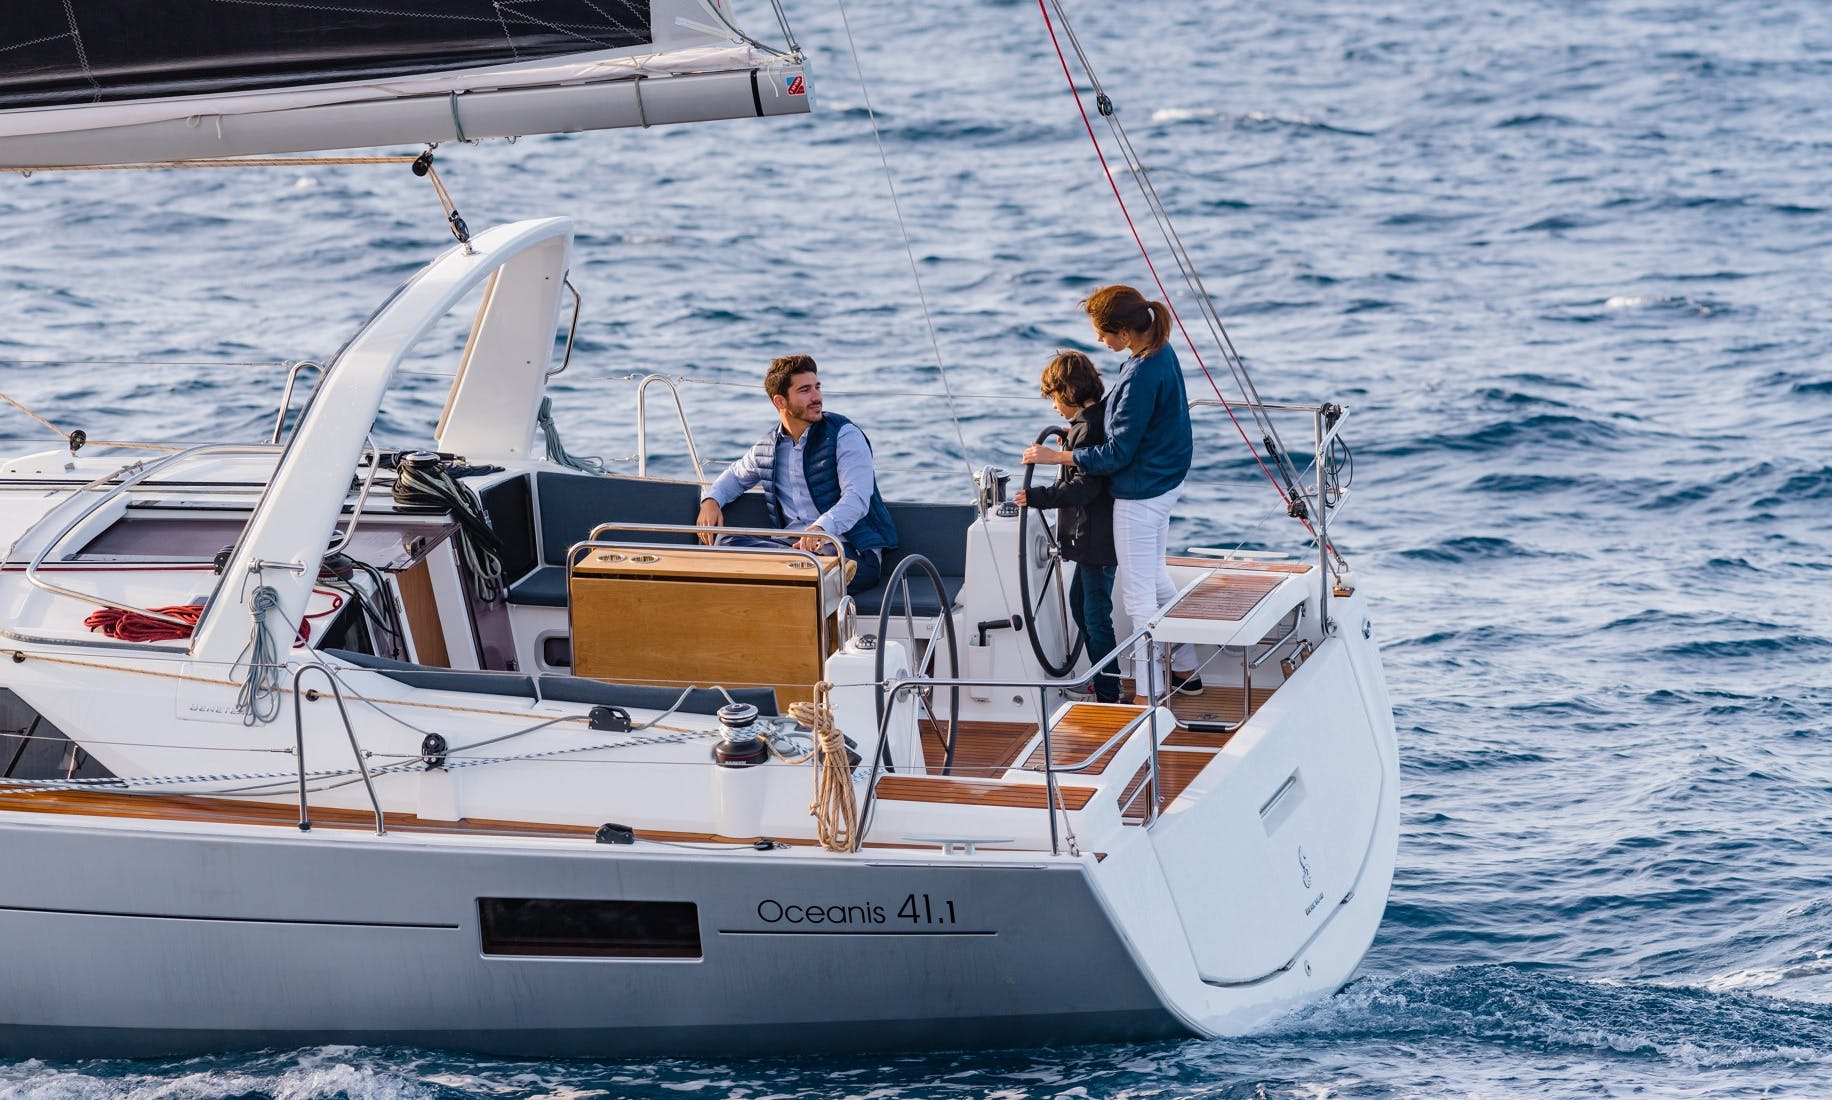 Charter a Beneteau Oceanis 41.1 Sailboat in Oakland, California